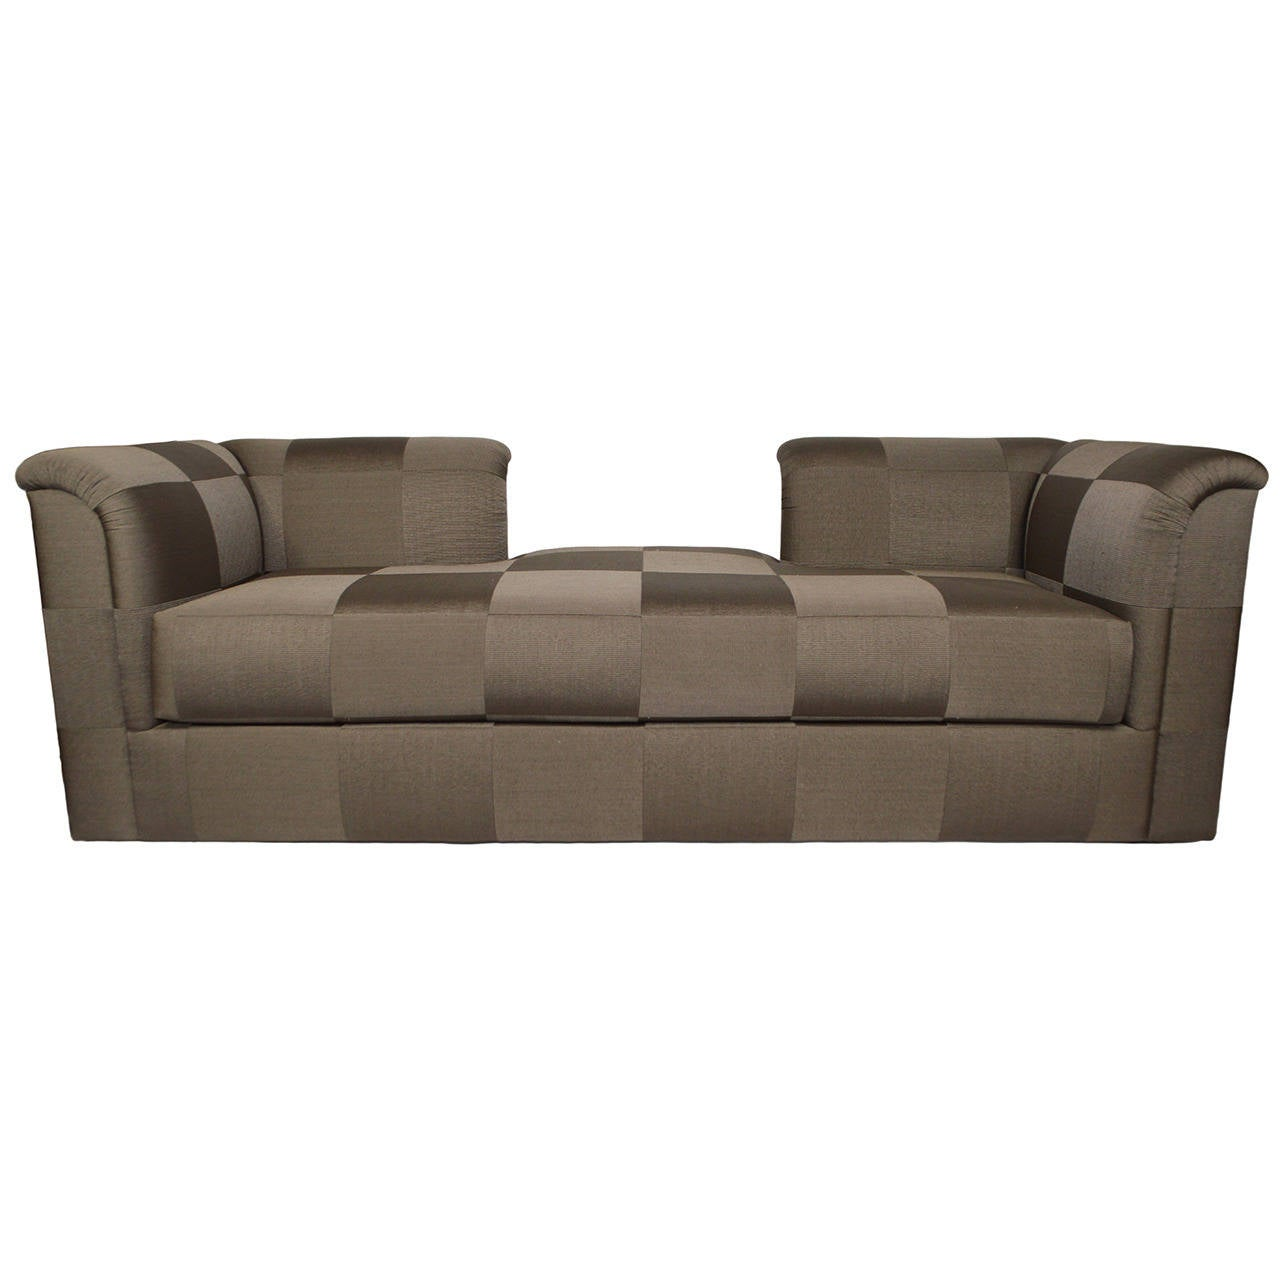 J Robert Scott French Line Tete A Tete Sofa For Sale At